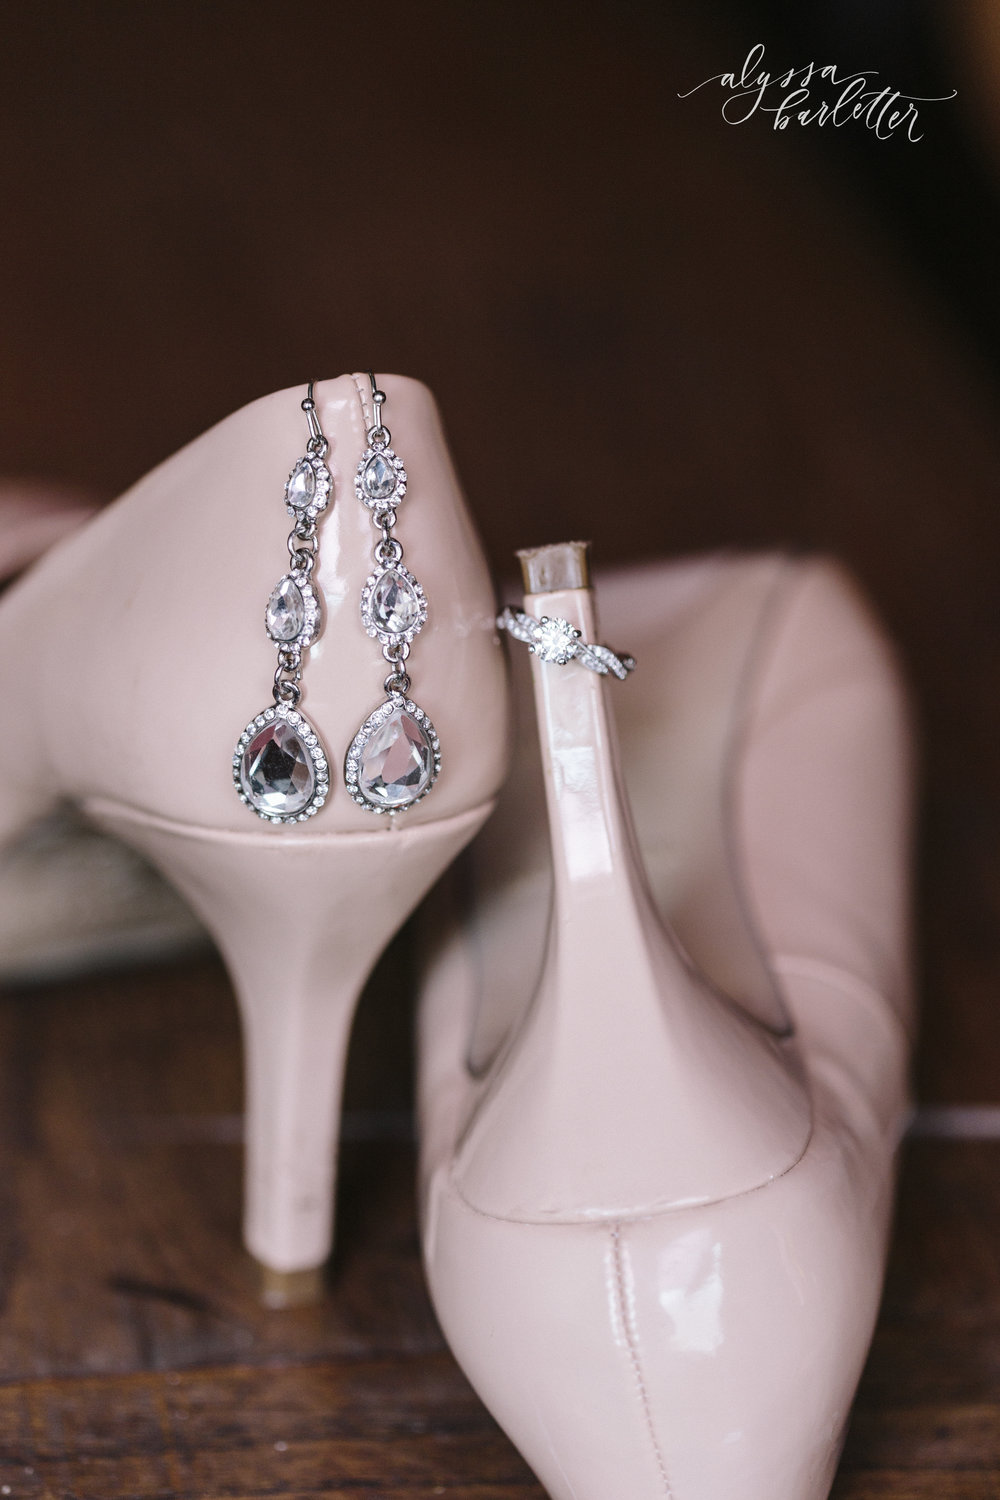 kansas city wedding photographer redeemer midtown details shoes jewelry earrings bride